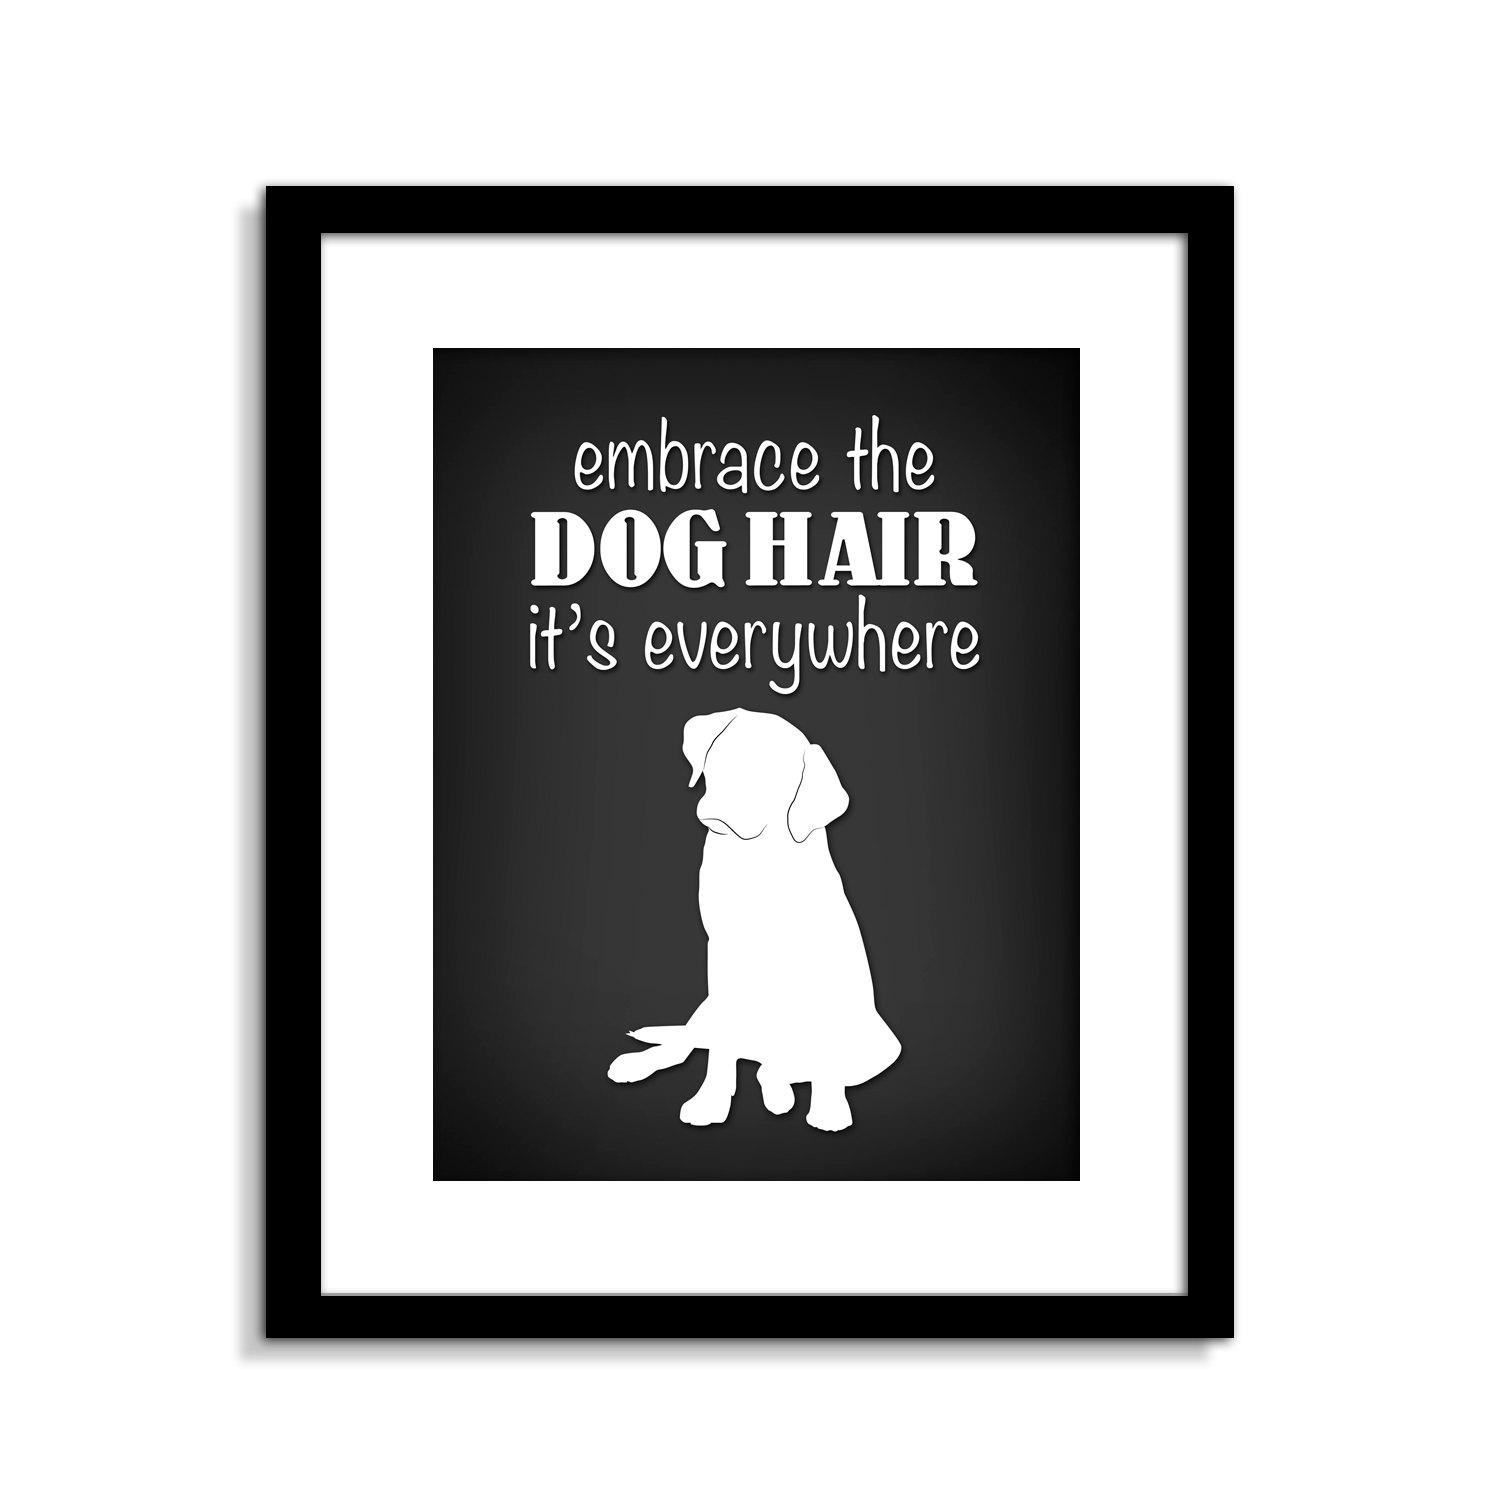 Funny Dog Wall Art Funny Dog Sign Embrace The Dog Hair Dog Intended For Dog Sayings Wall Art (Image 8 of 20)